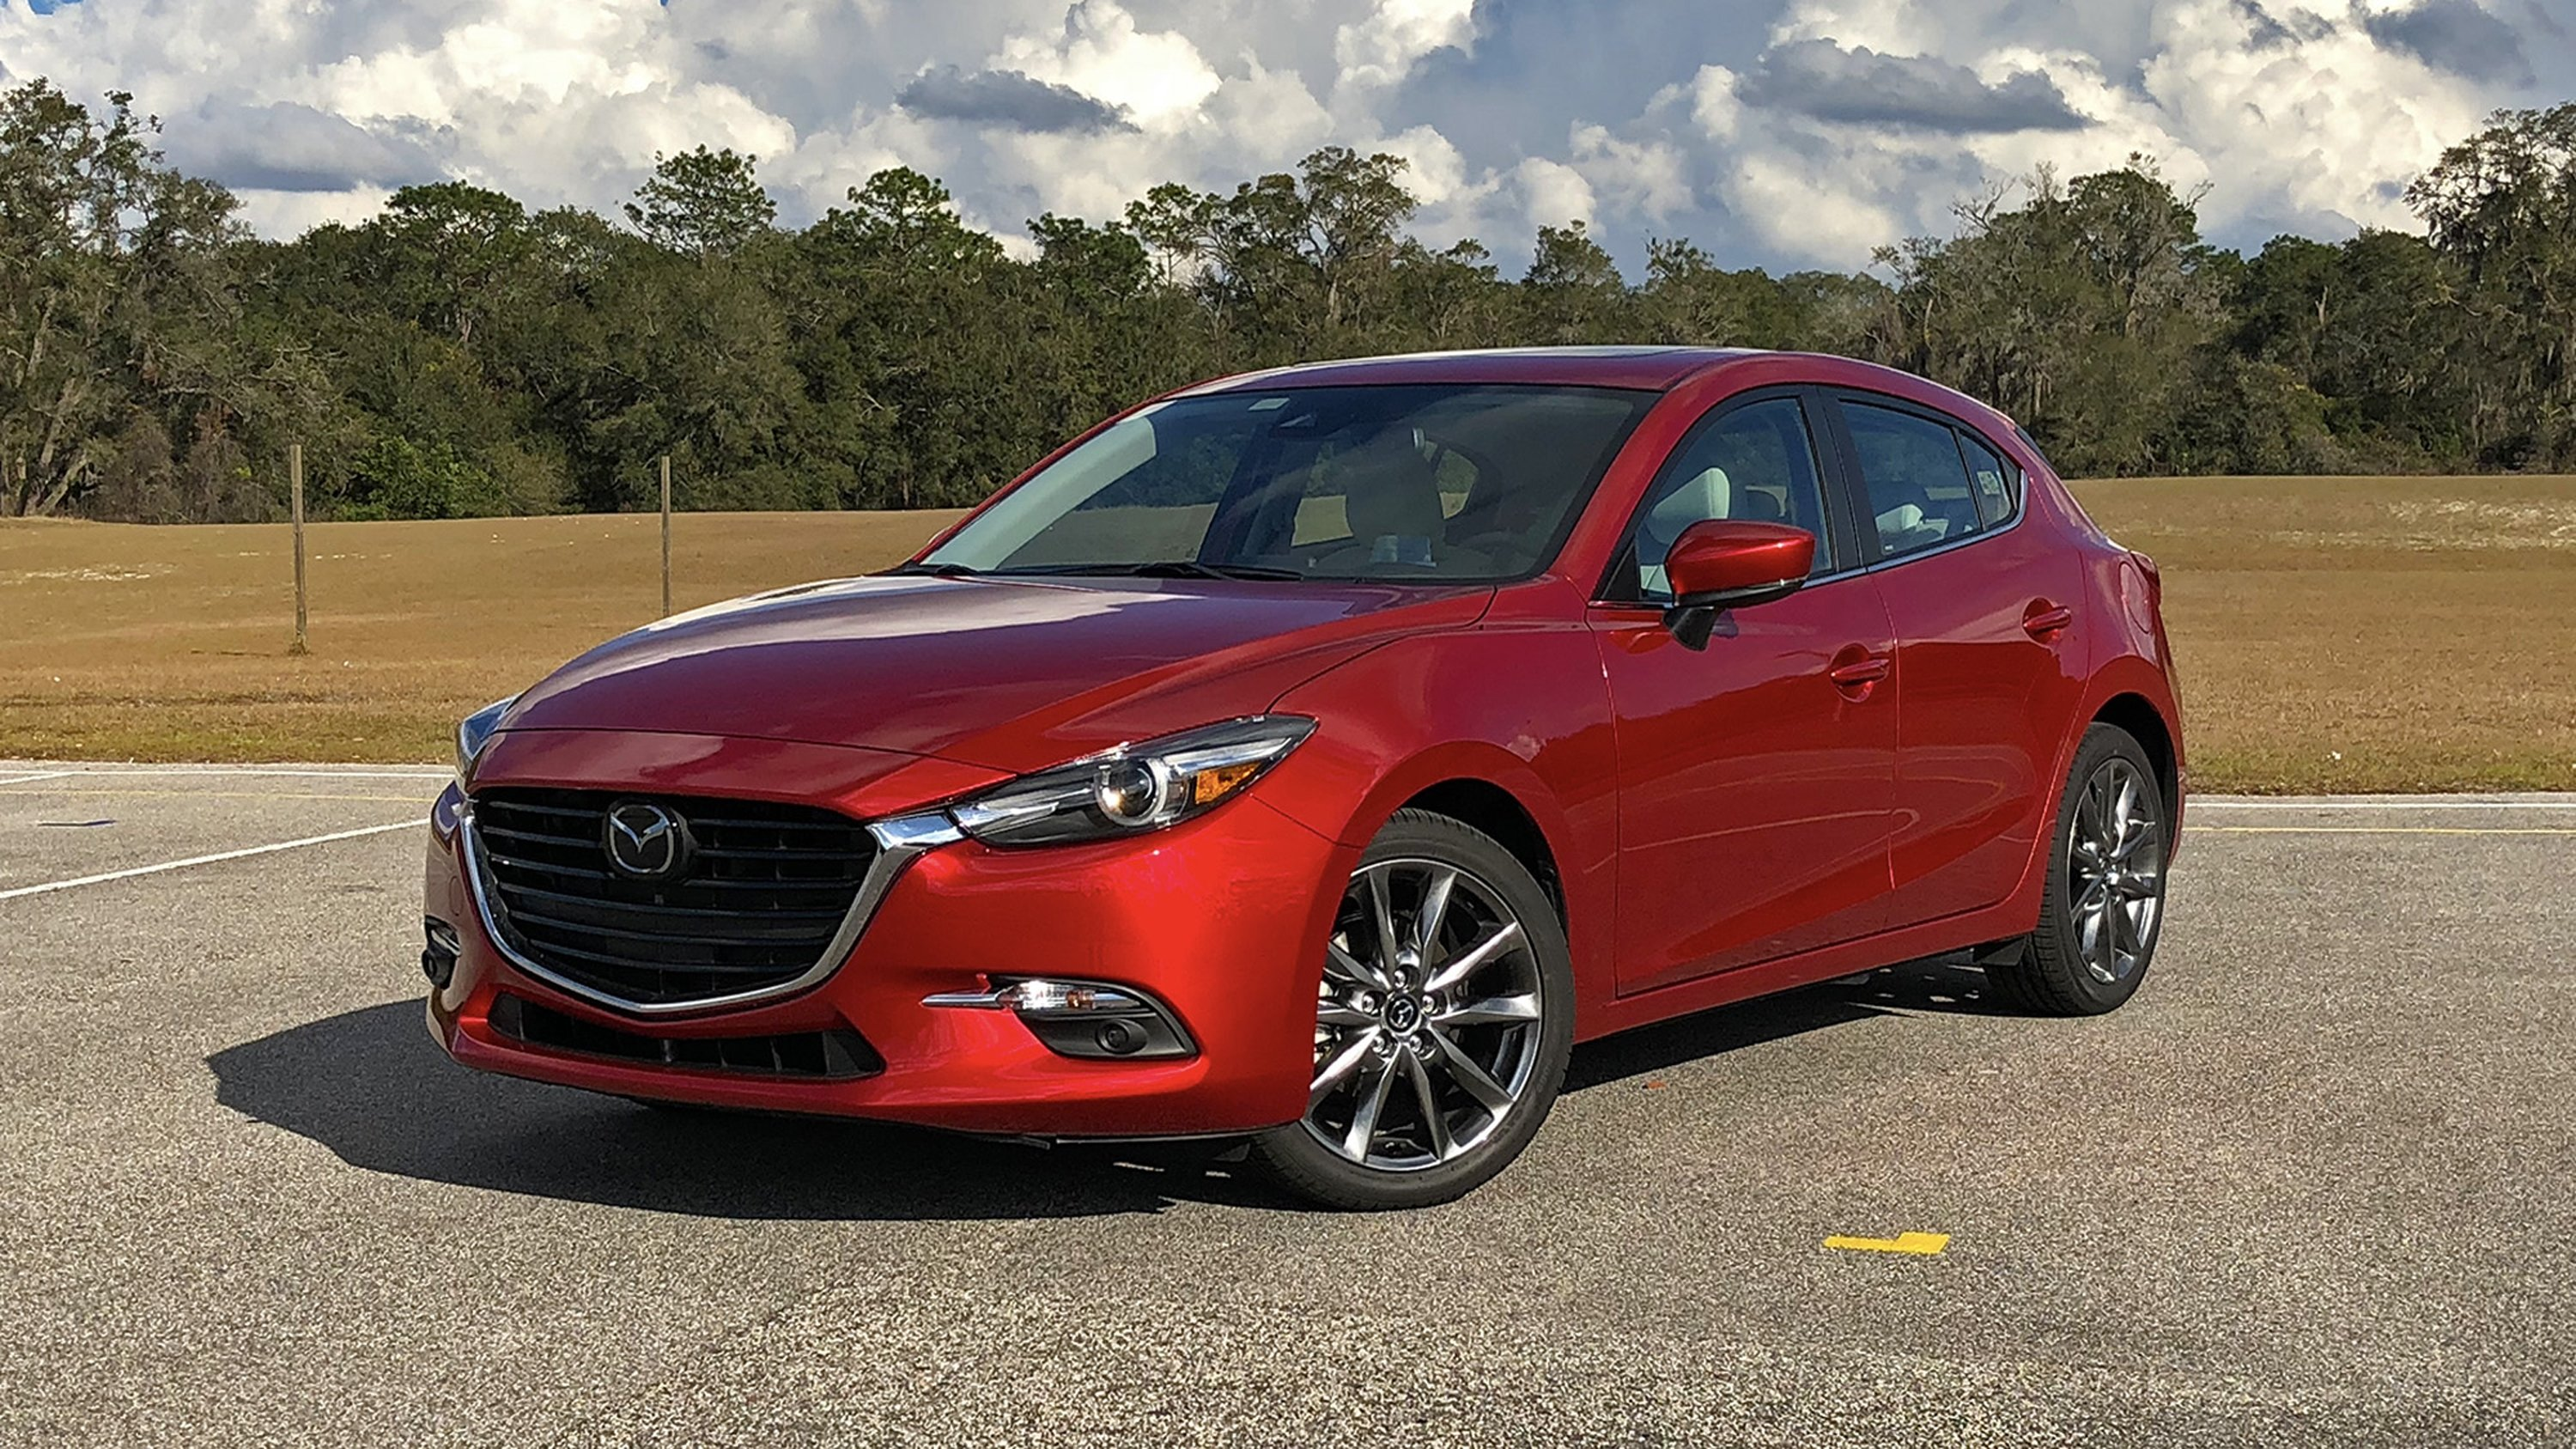 mazda3 grand touring driven top speed howldb. Black Bedroom Furniture Sets. Home Design Ideas